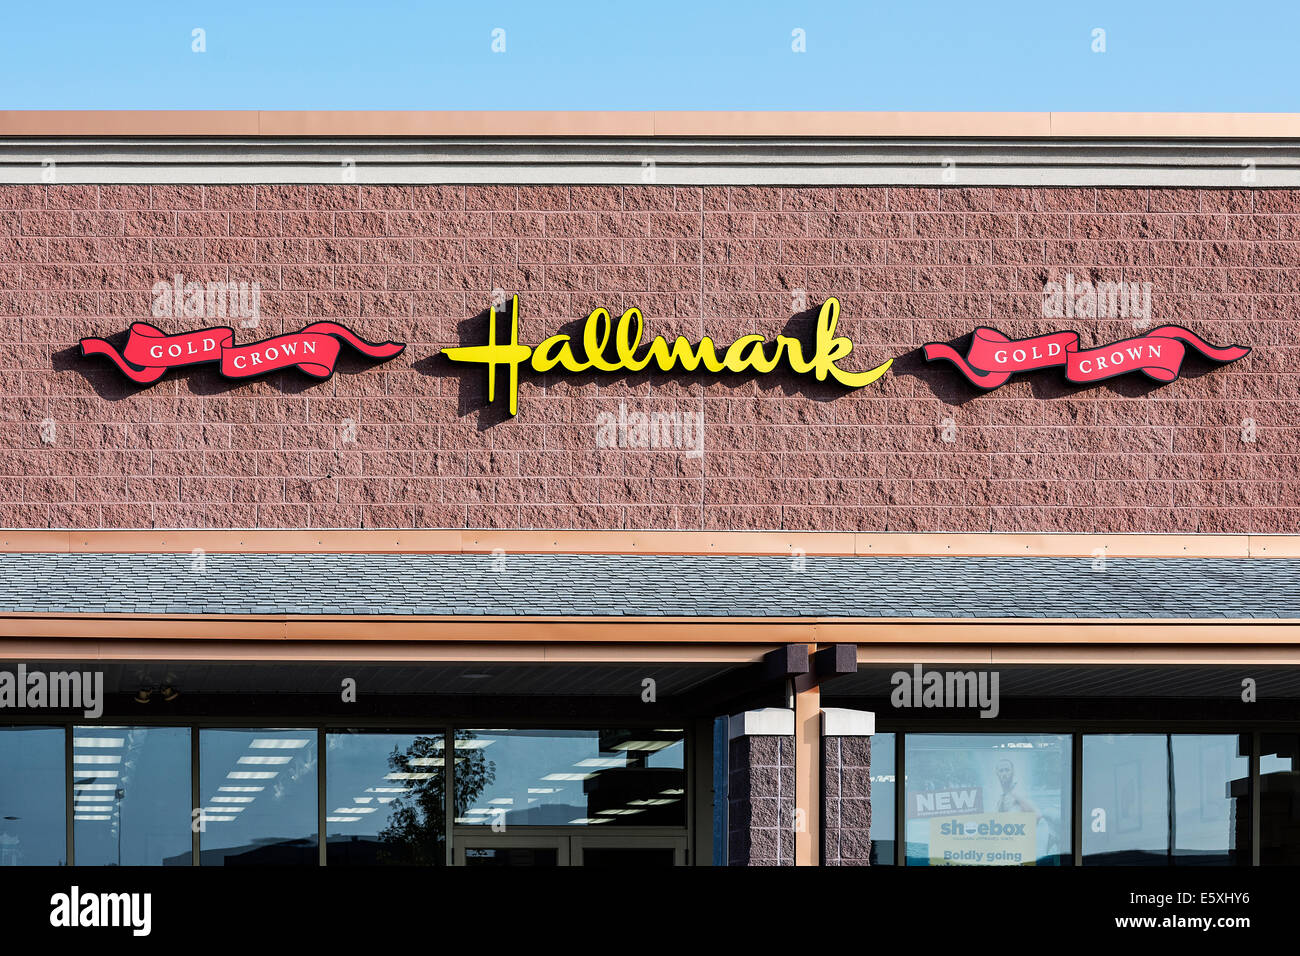 Hallmark greeting card store mount laural new jersey usa stock hallmark greeting card store mount laural new jersey usa kristyandbryce Choice Image